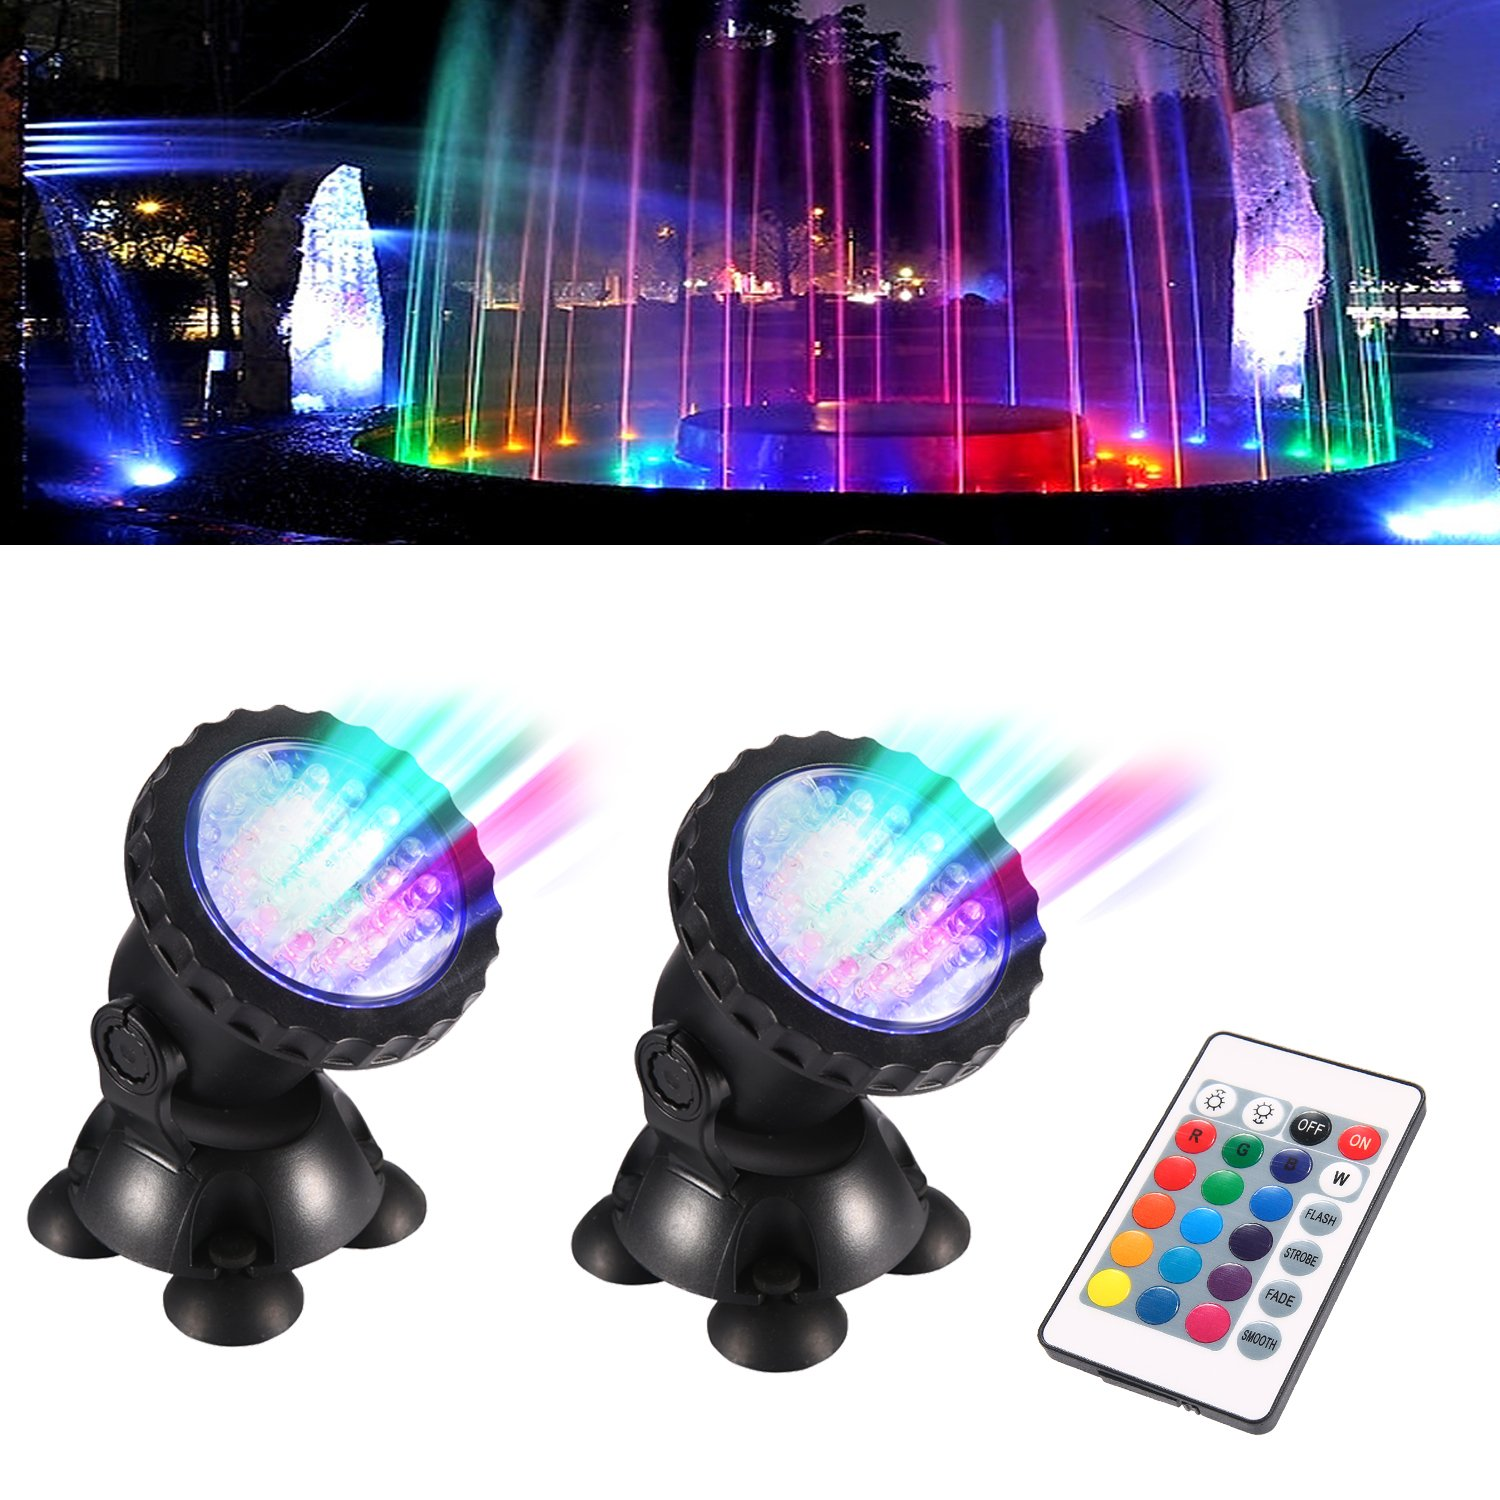 TOPBRY Remote Control Submersible Spotlight Pond lights 36 LED Colorful IP68 Waterproof Aquarium Spotlight Multi-color Decoration Landscape lamp for Fountain Fish Pond Tank Water Garden (Set of 2)